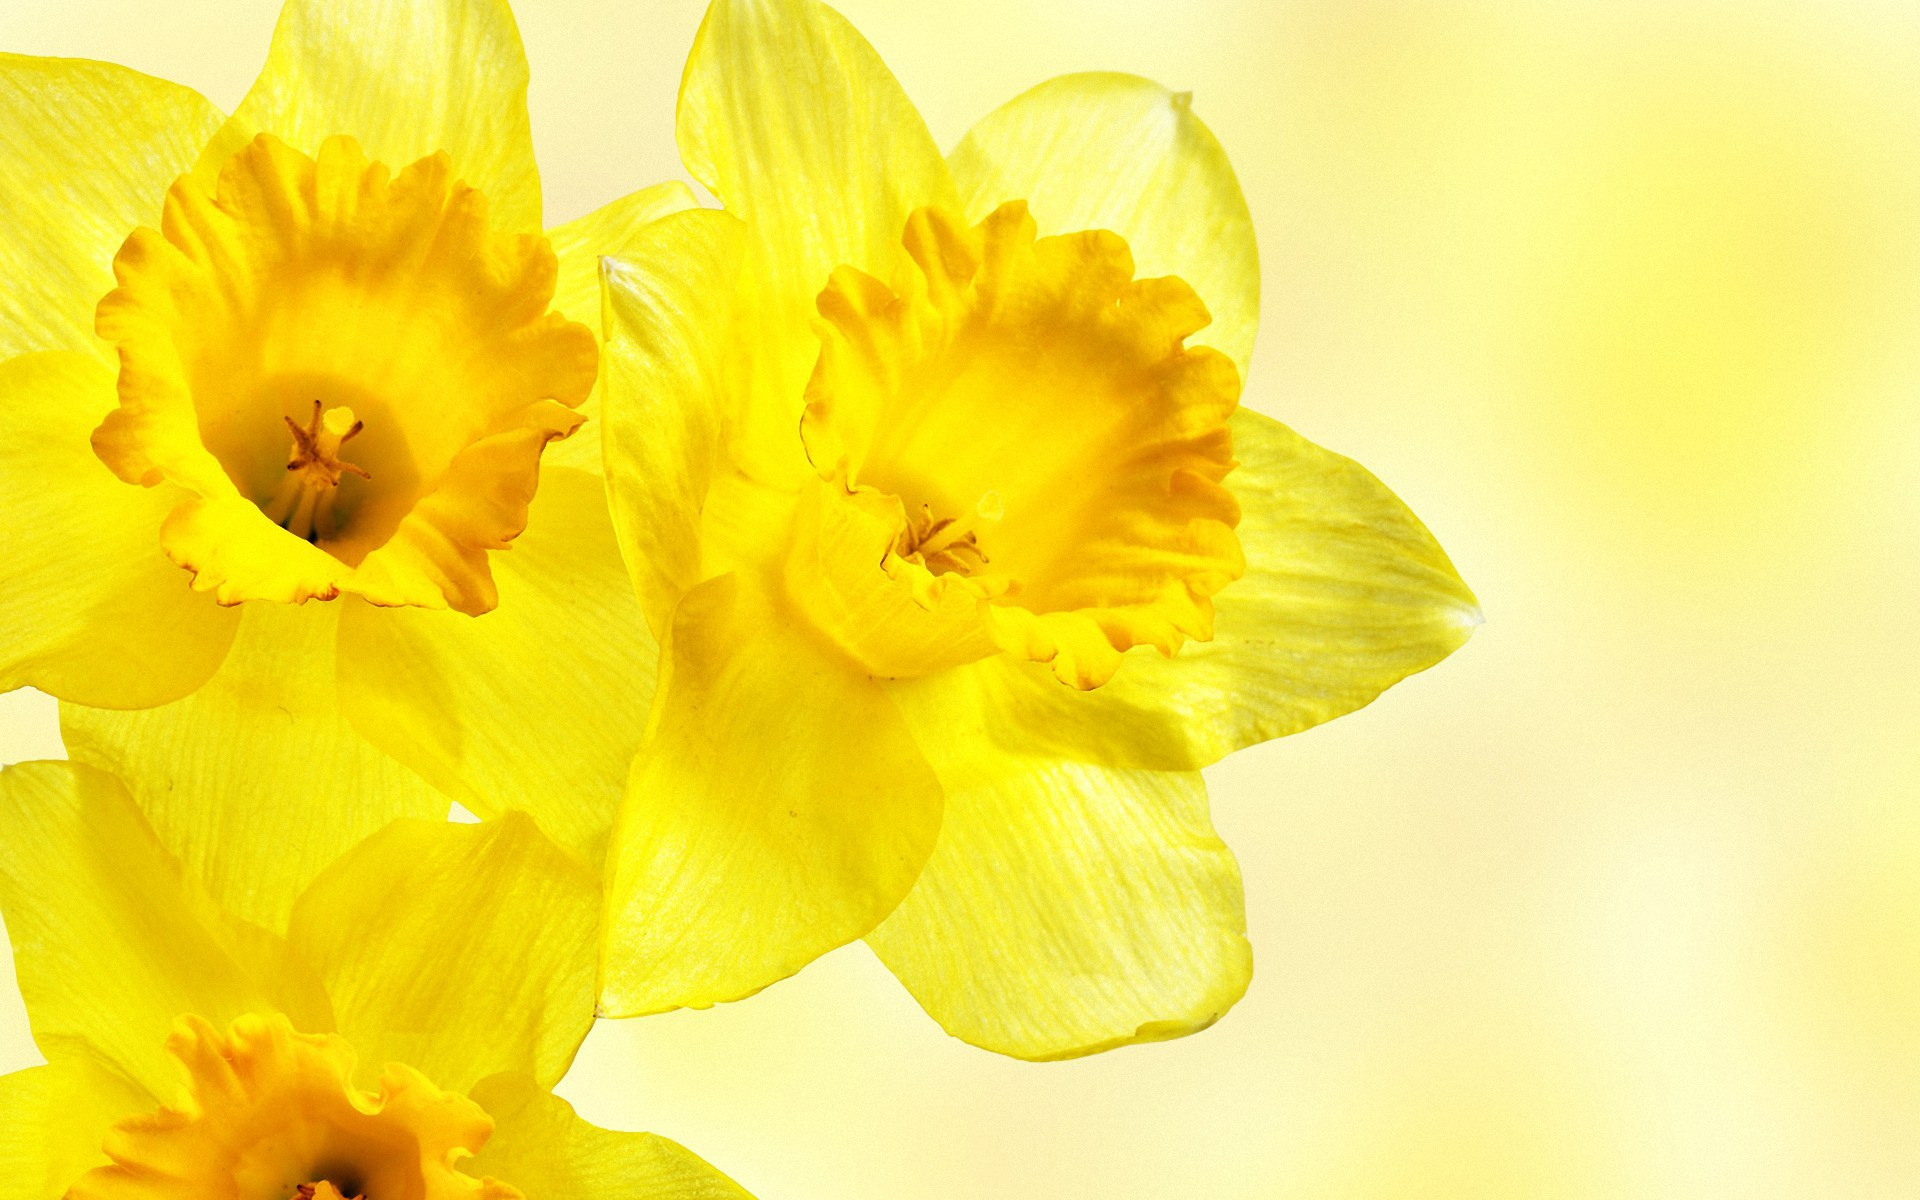 daffodil day images daffodil day hd wallpaper and background photos